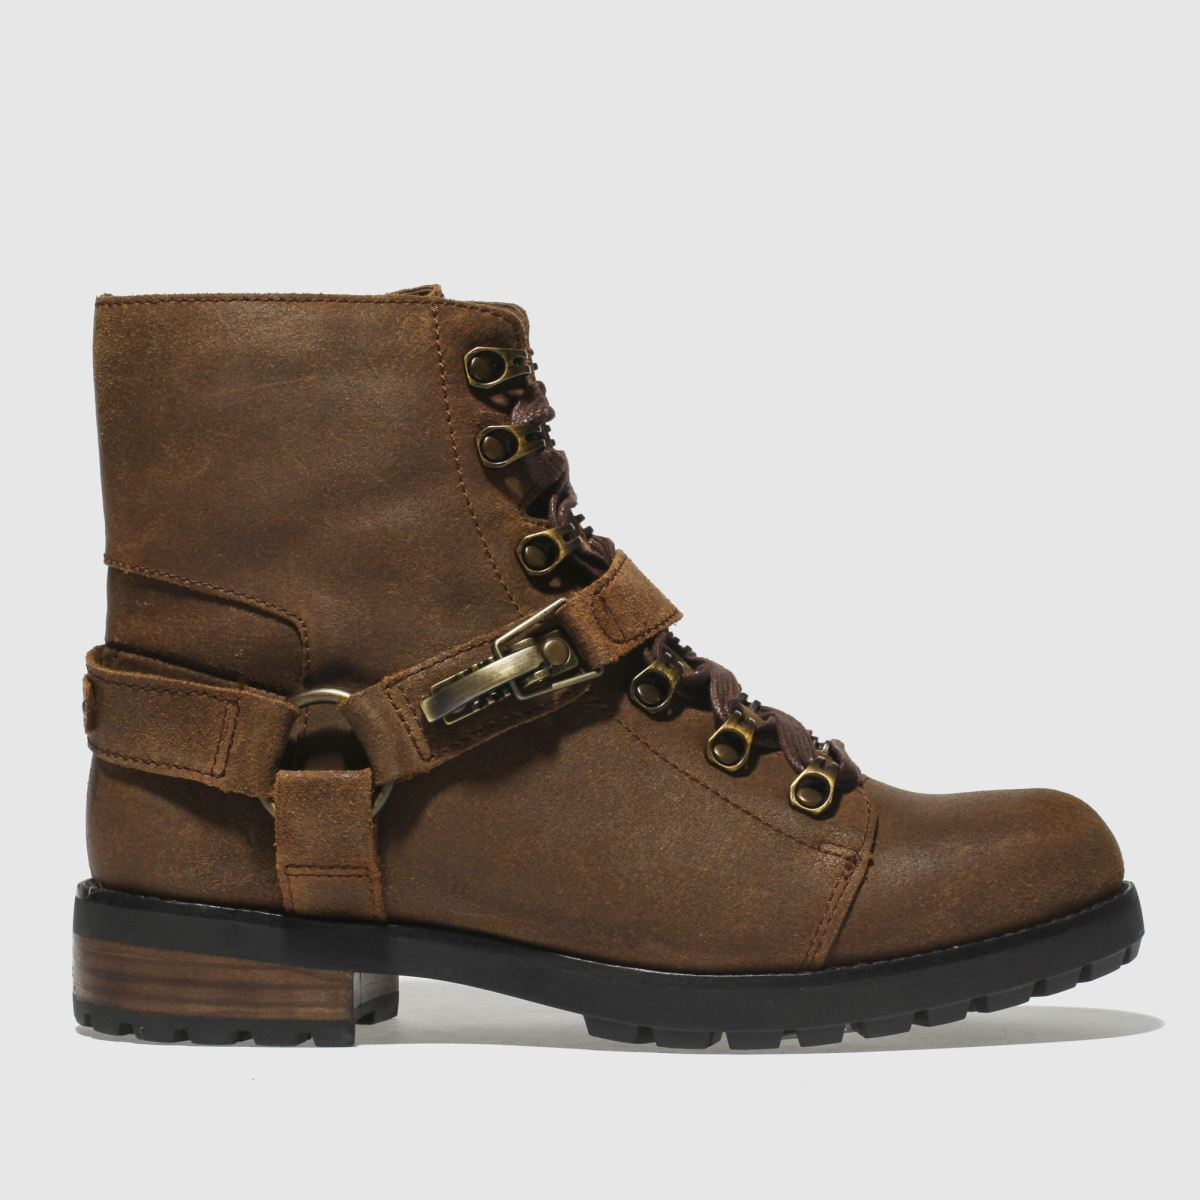 Ugg Tan Fritzi Lace-up Boots